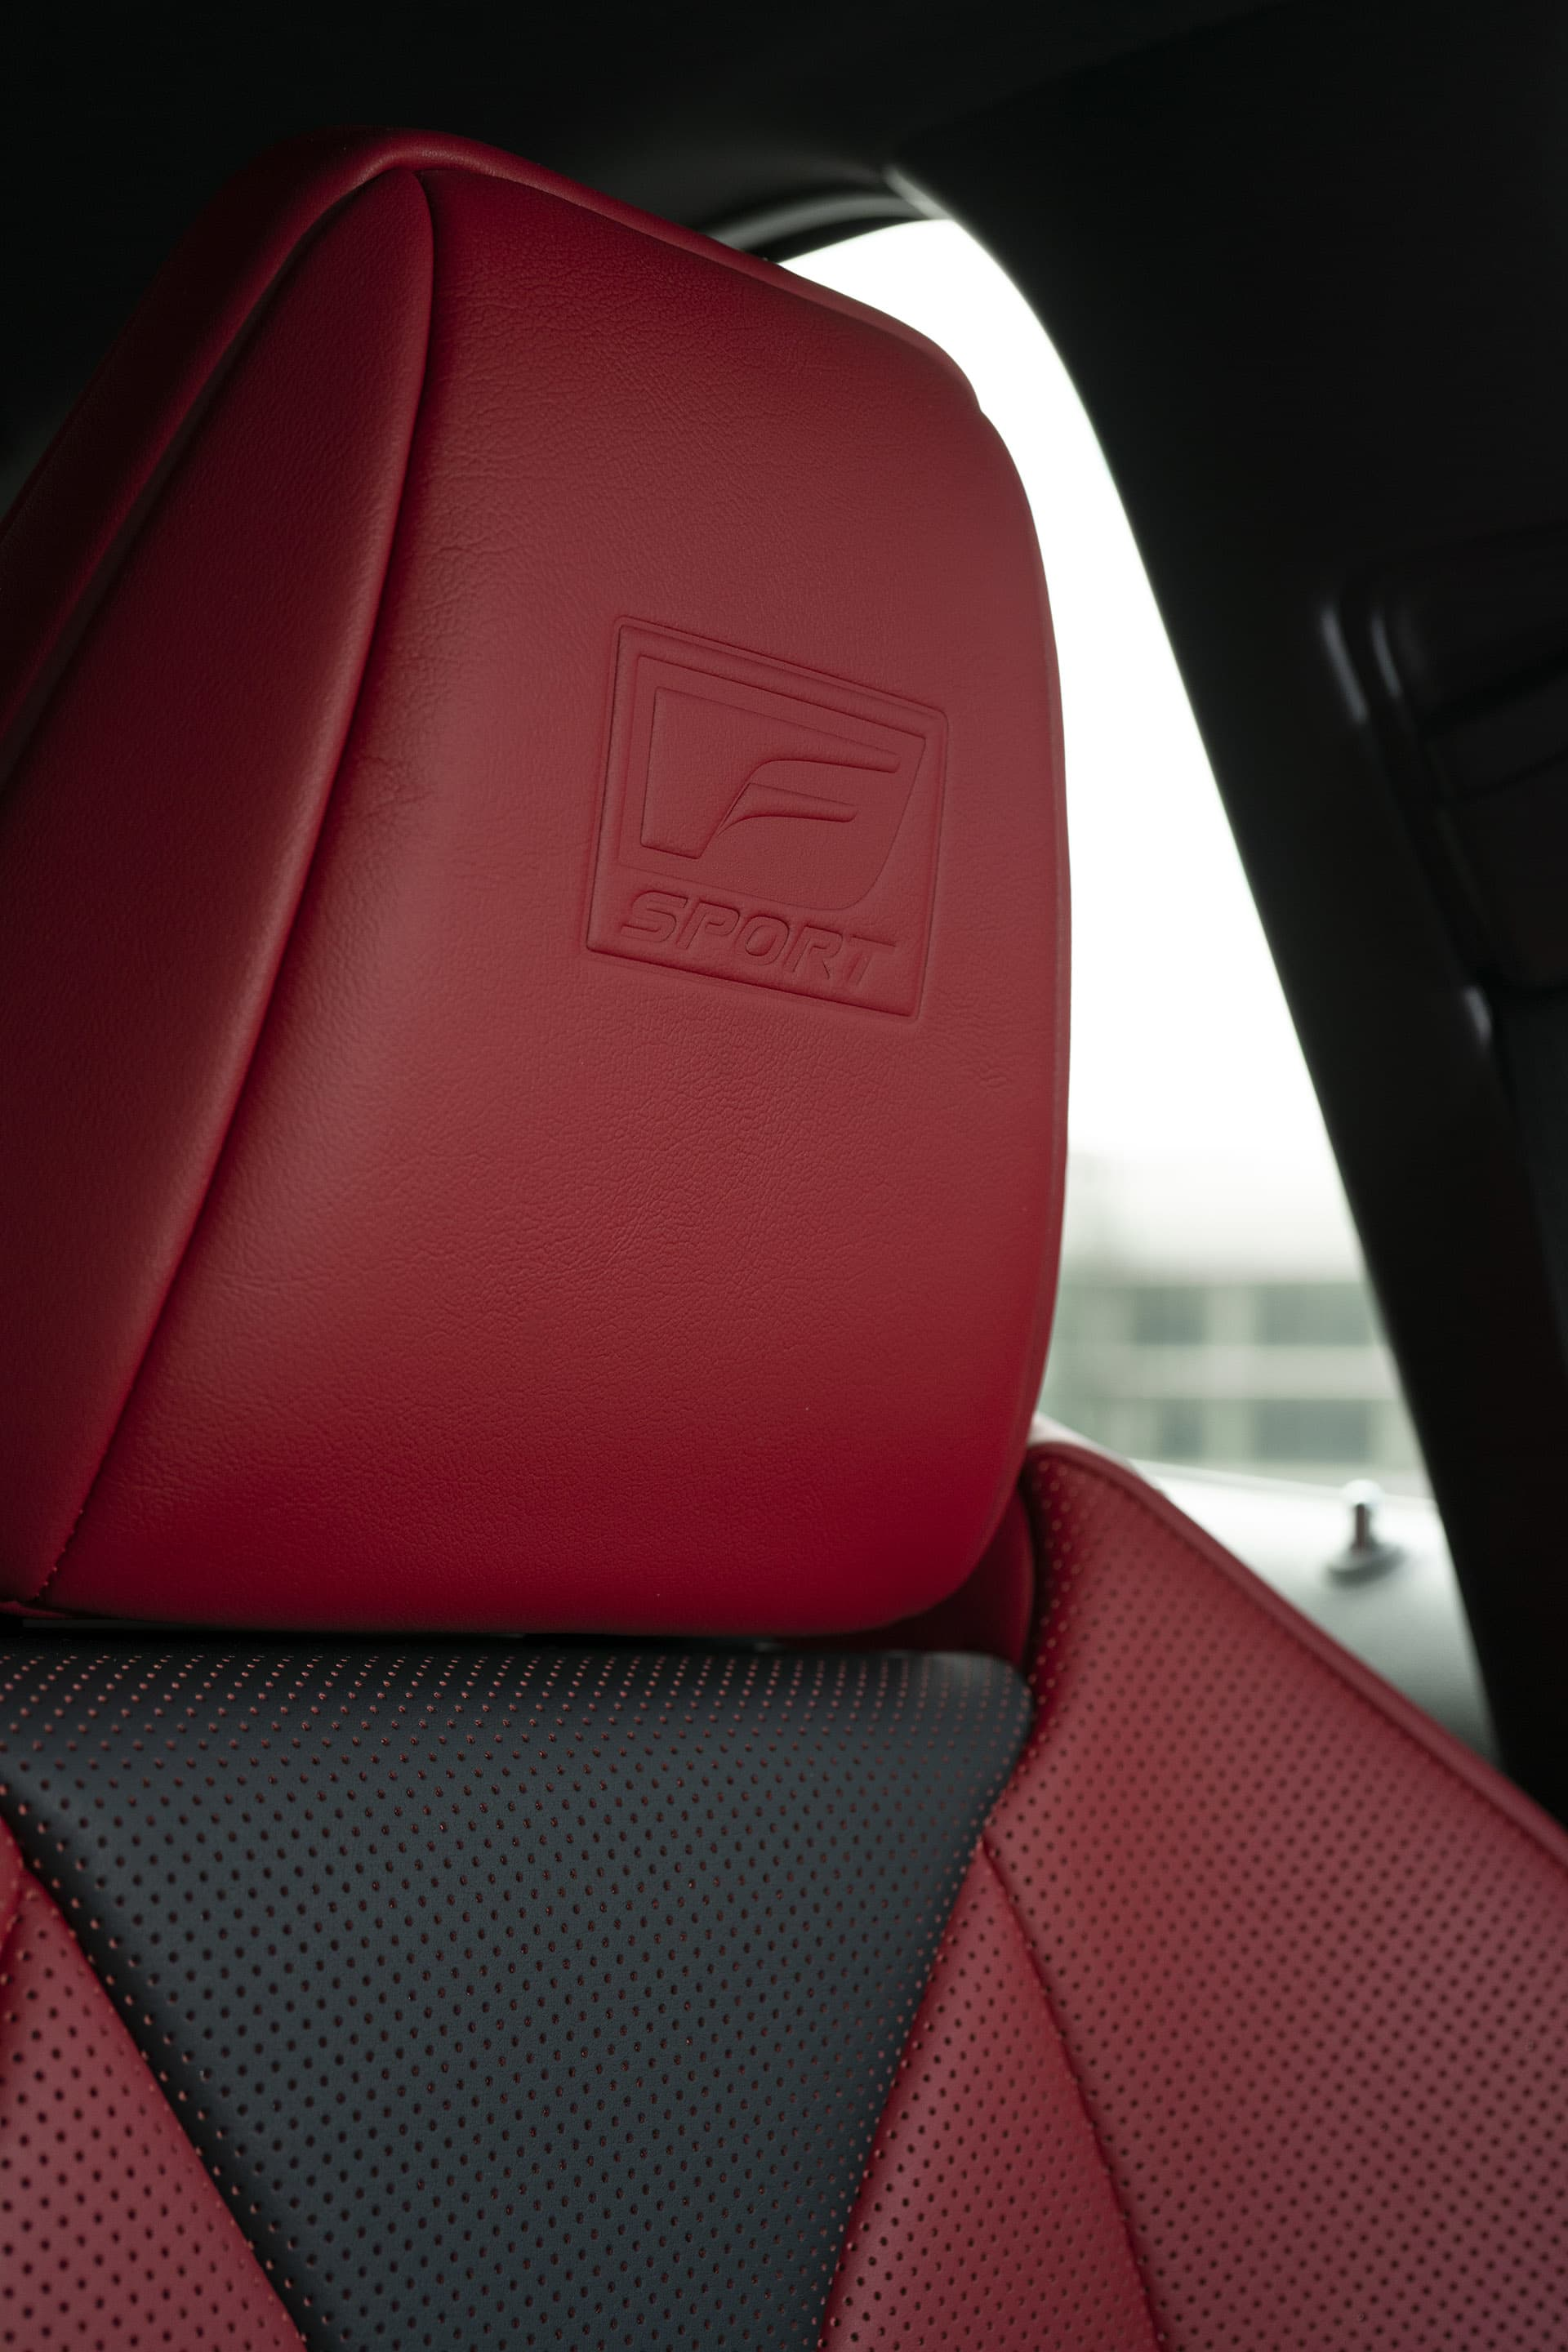 The red leather headrest embossed with the F-sport emblem.